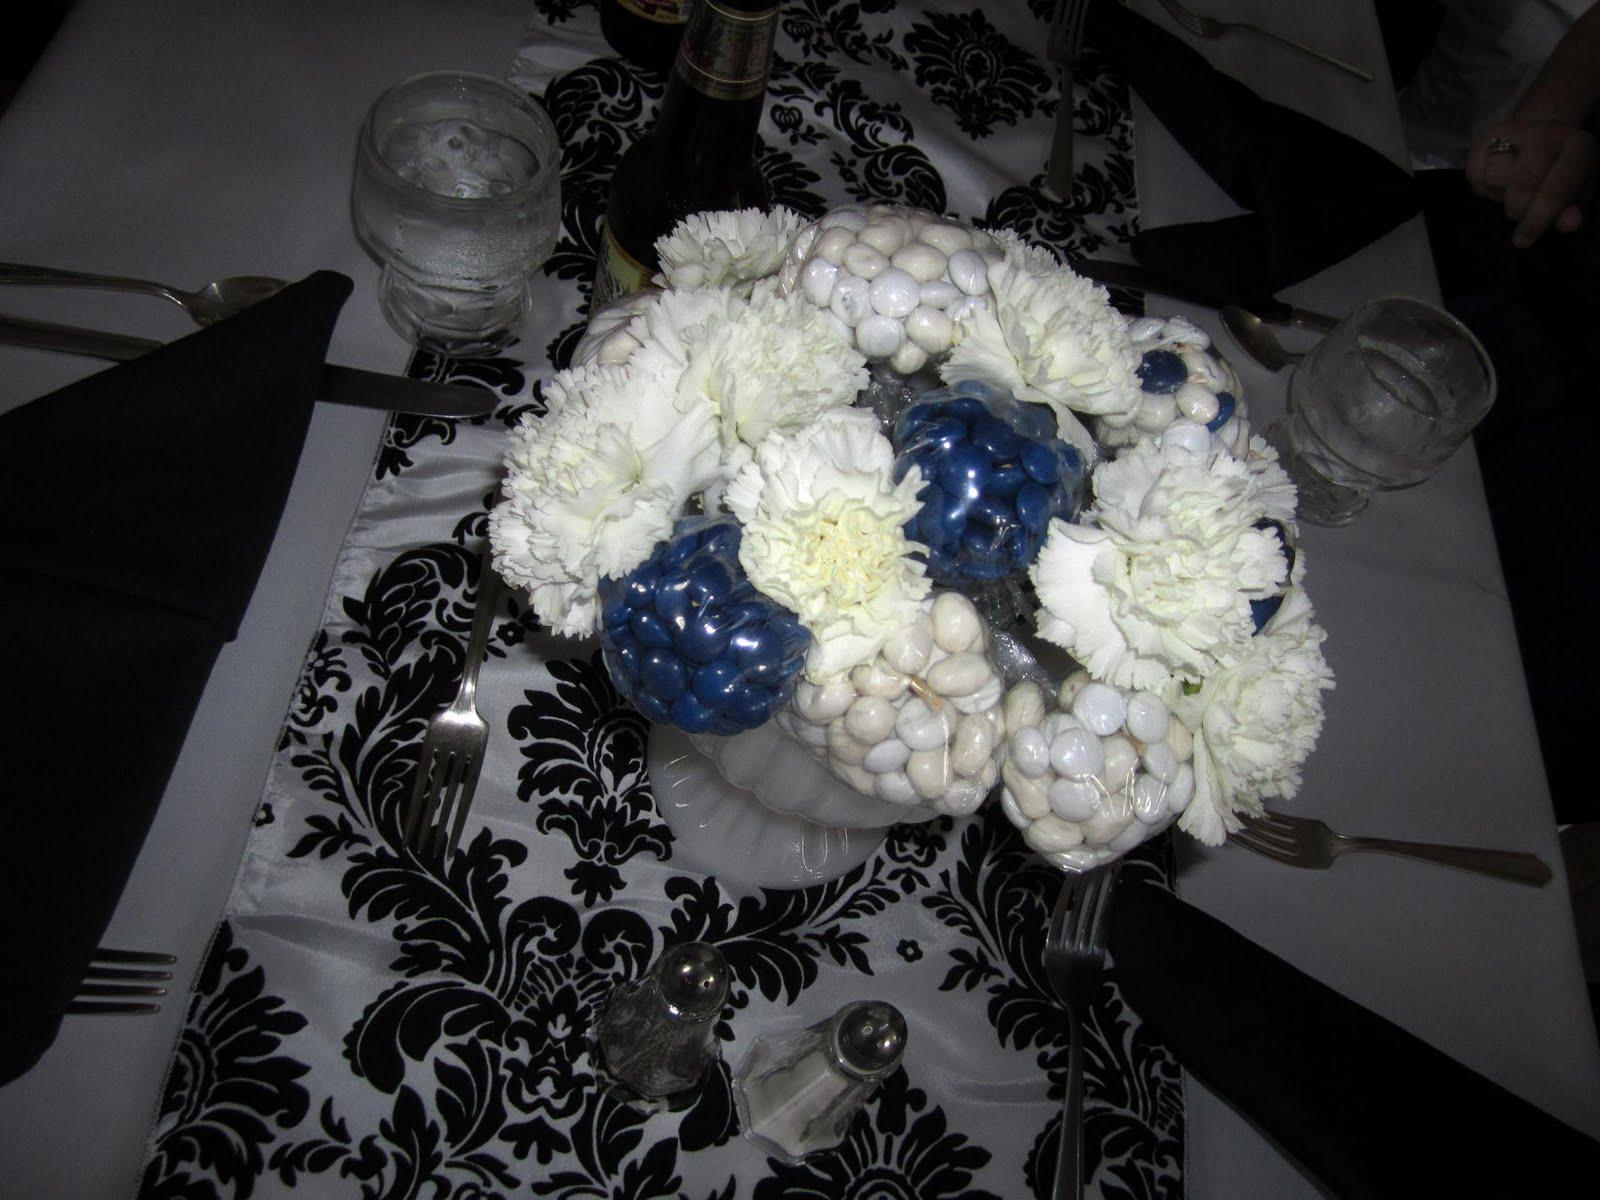 the finished centerpiece